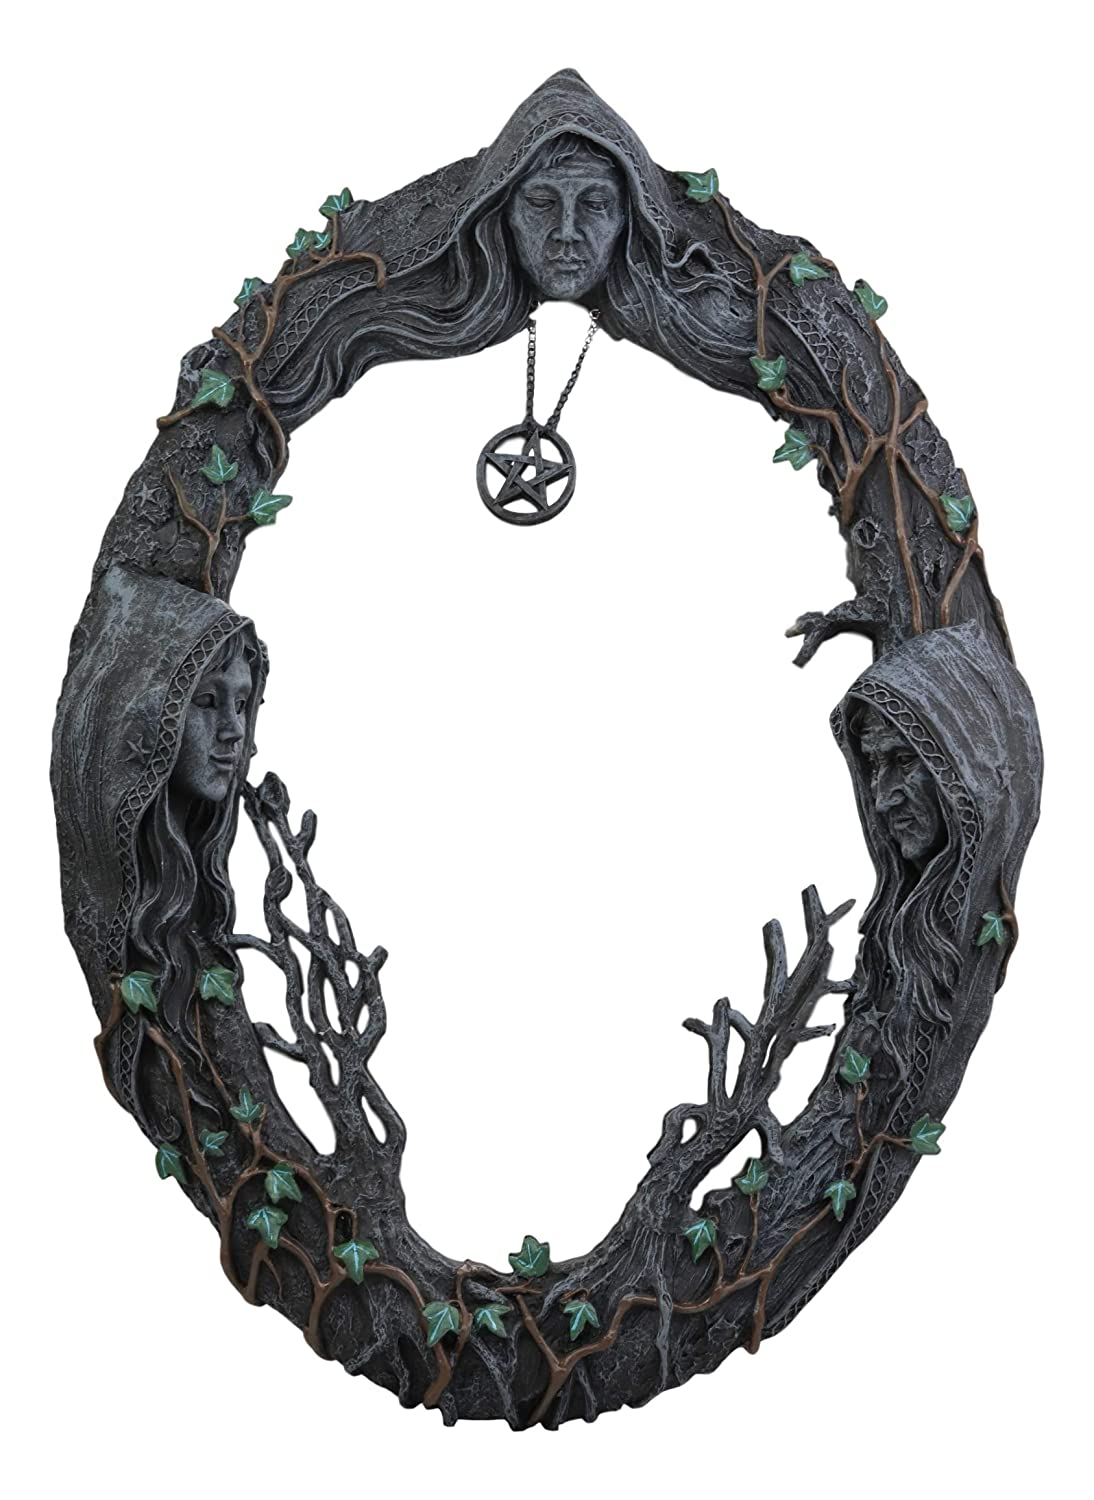 "Ebros Celtic Sacred Moon Triple Goddess Mother Maiden Crone Wall Hanging Mirror with Pentagram Amulet Pendant Plaque Decor 17"" Tall Hecate Brigid Wicca Wiccan Holy Trinity Decor Sculpture Decorative"